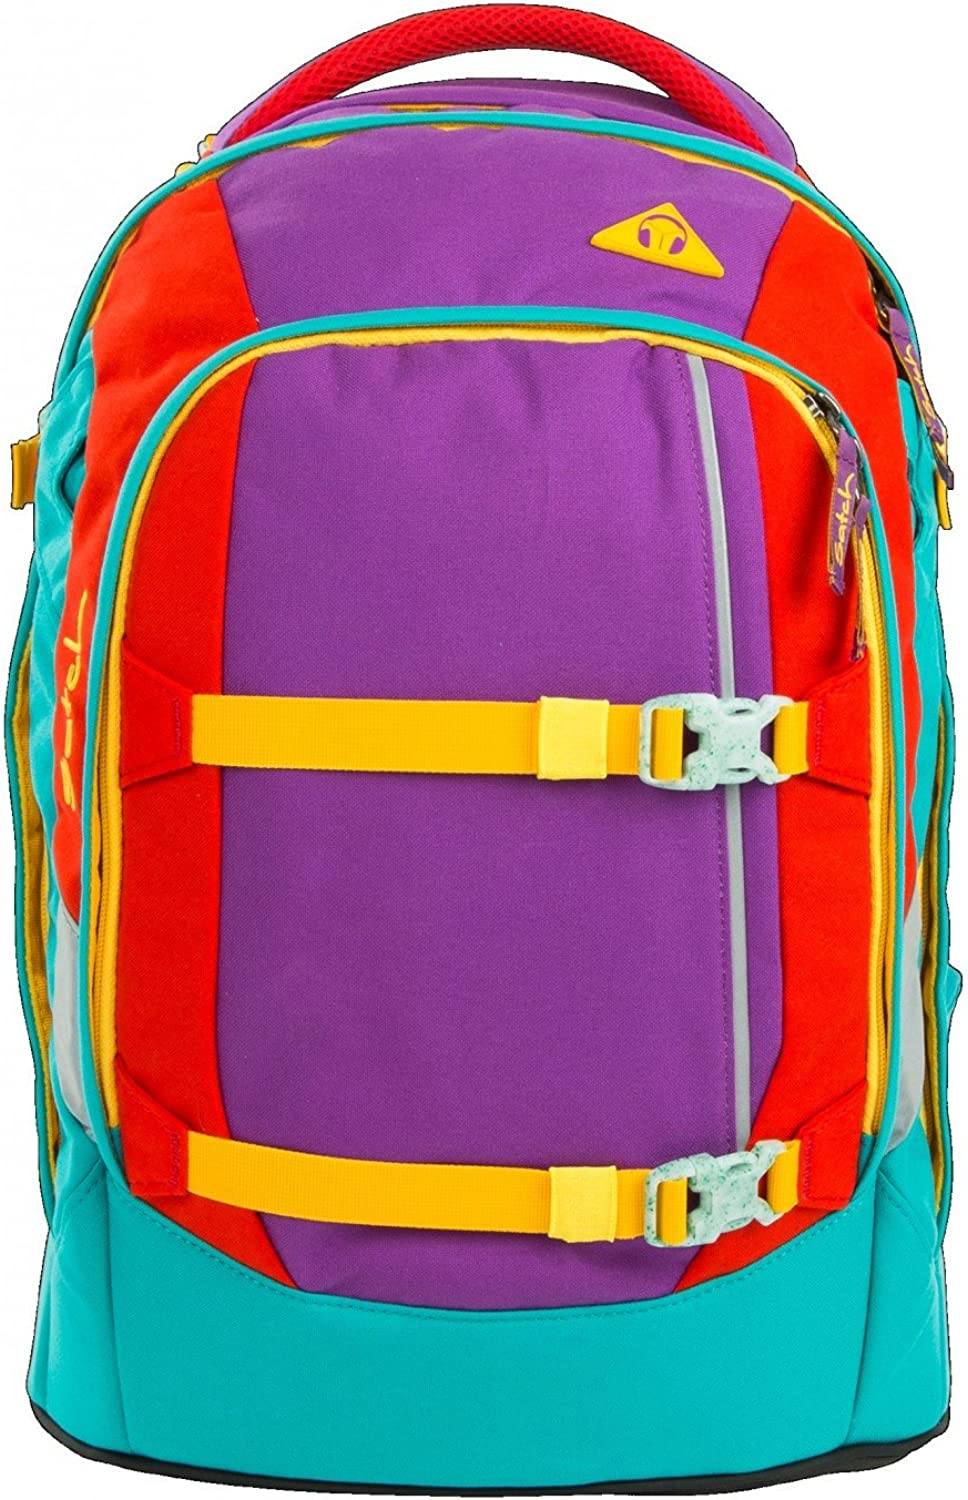 Satch Schoolbag Set Multi-Coloured purple green red